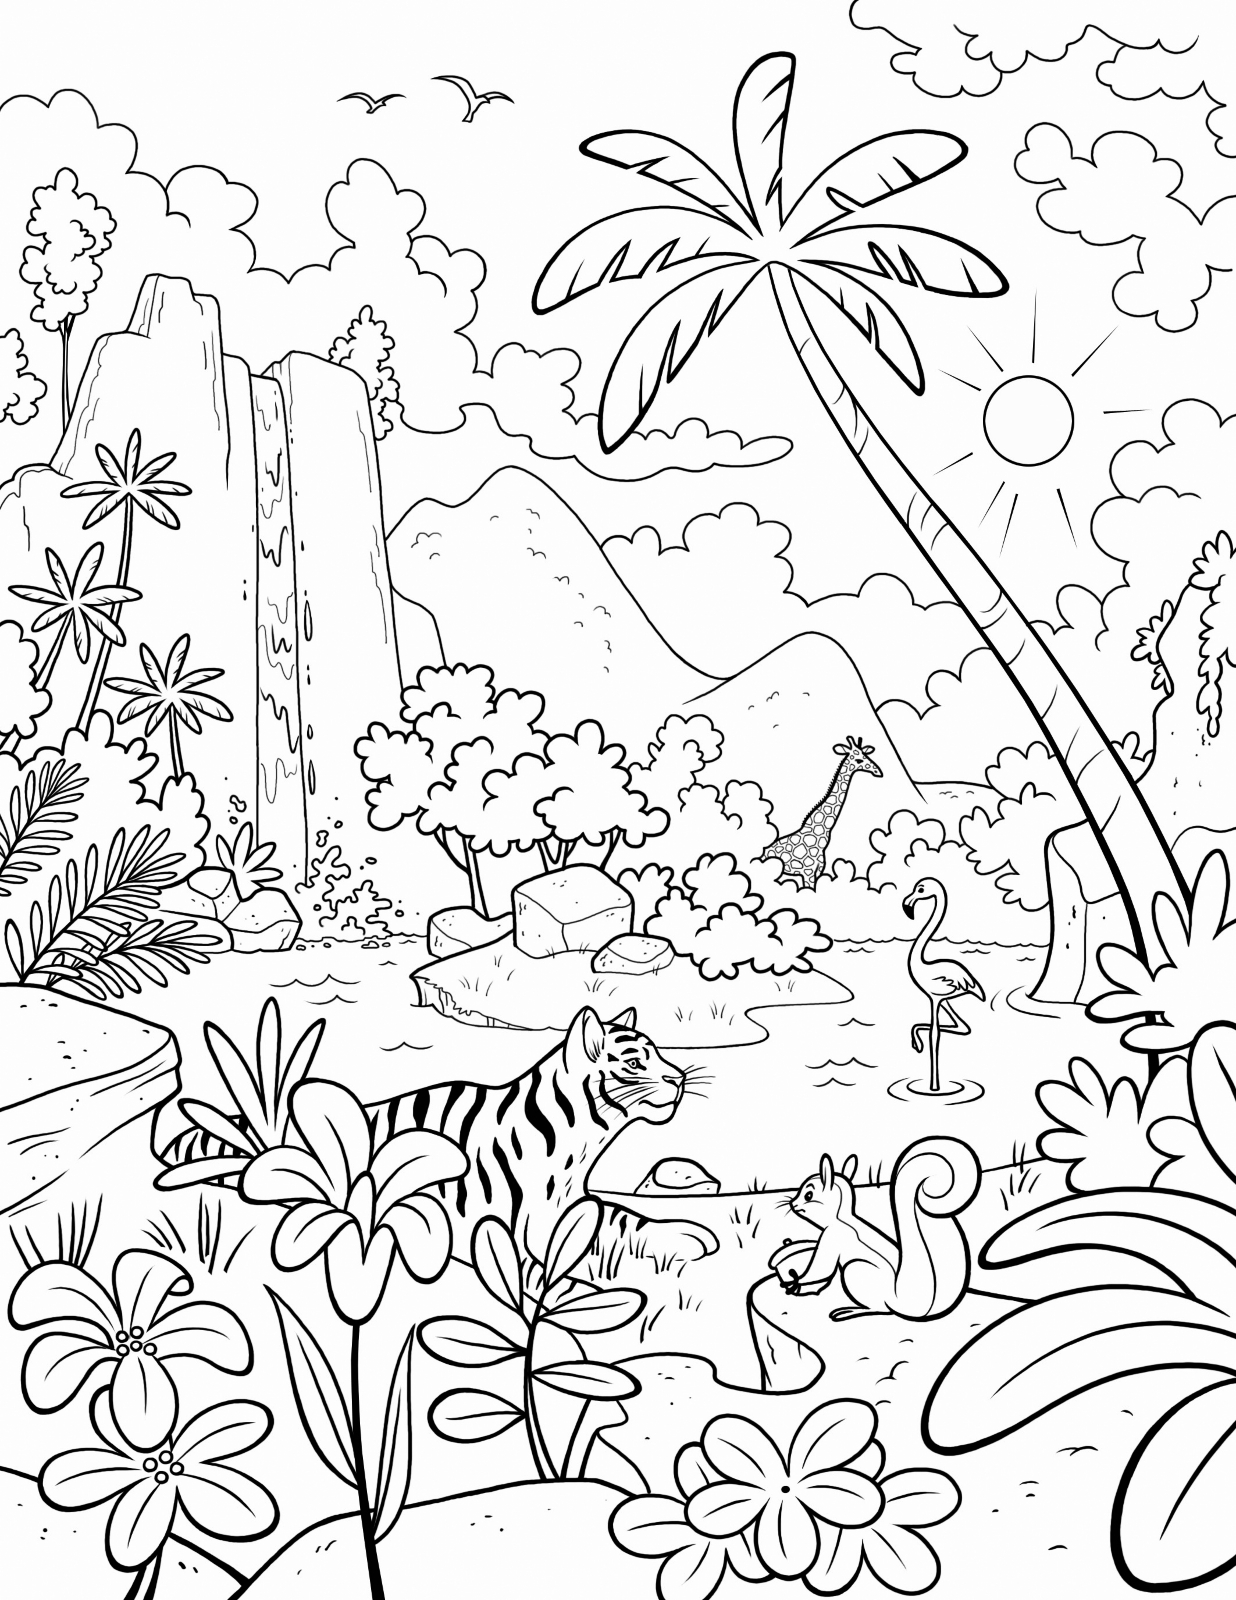 jungle coloring page jungle coloring pages to download and print for free coloring jungle page